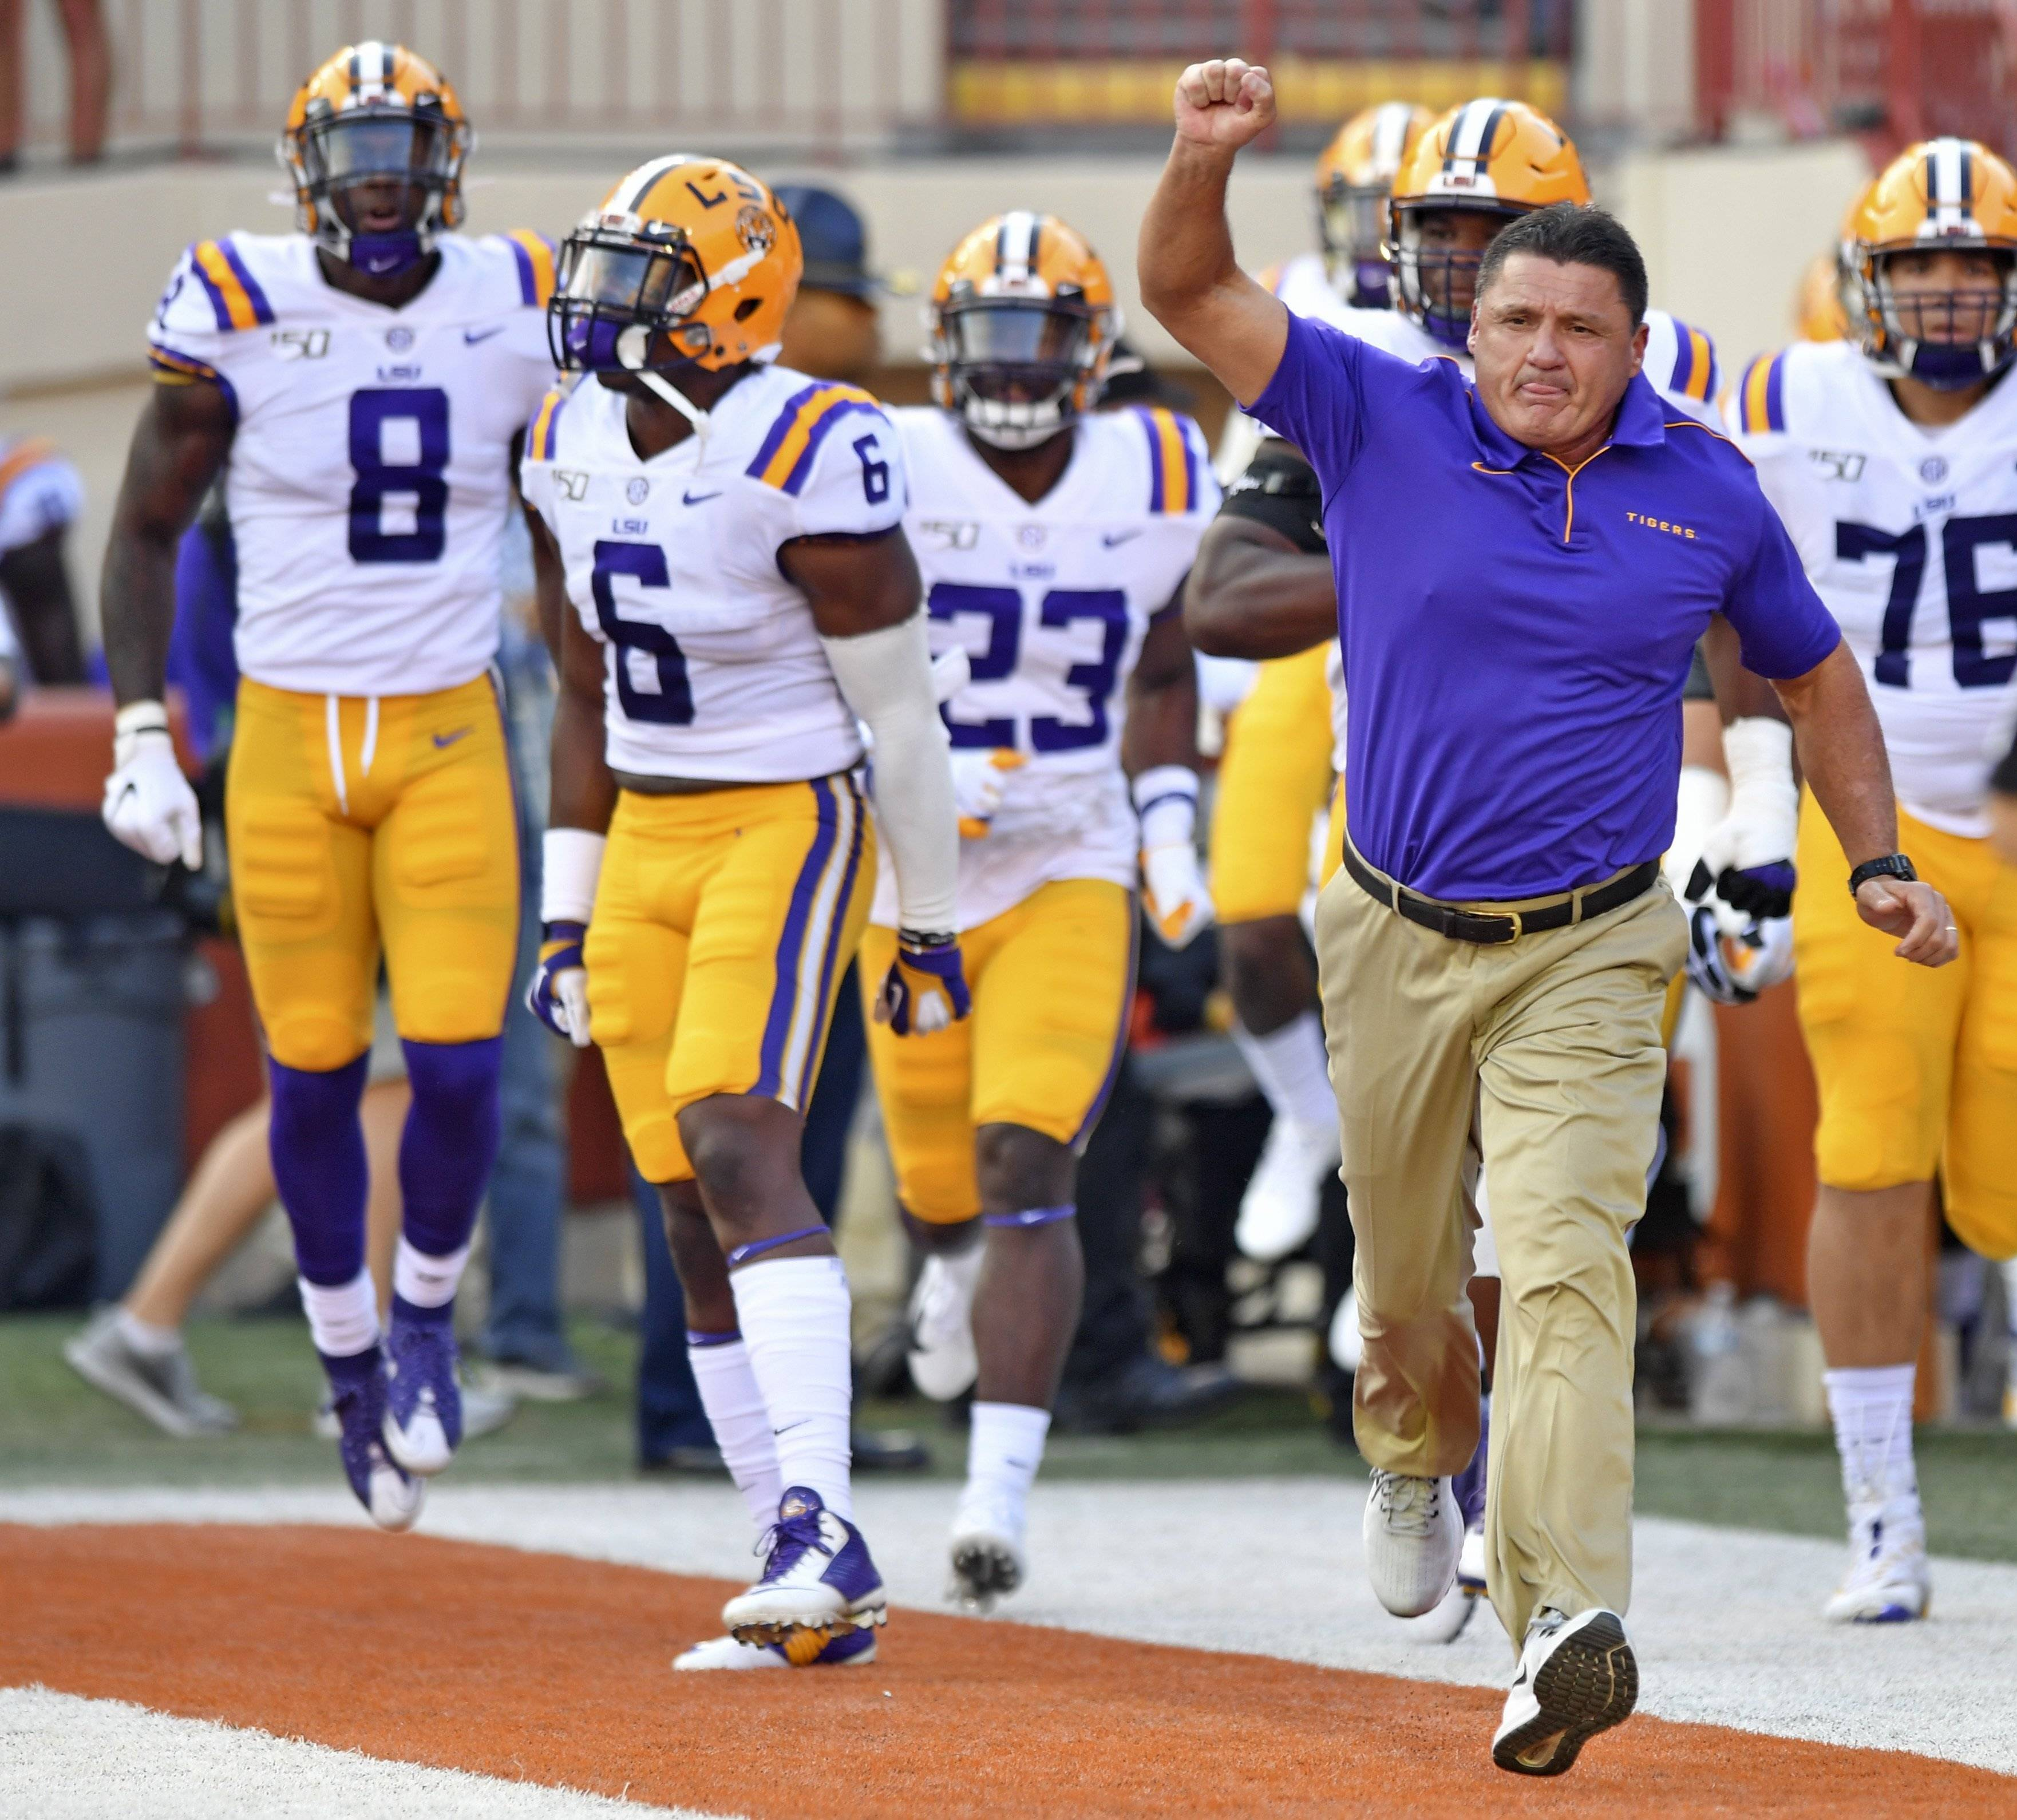 Hey, it's hot in here! No, Texas says LSU never complained about locker room air conditioner